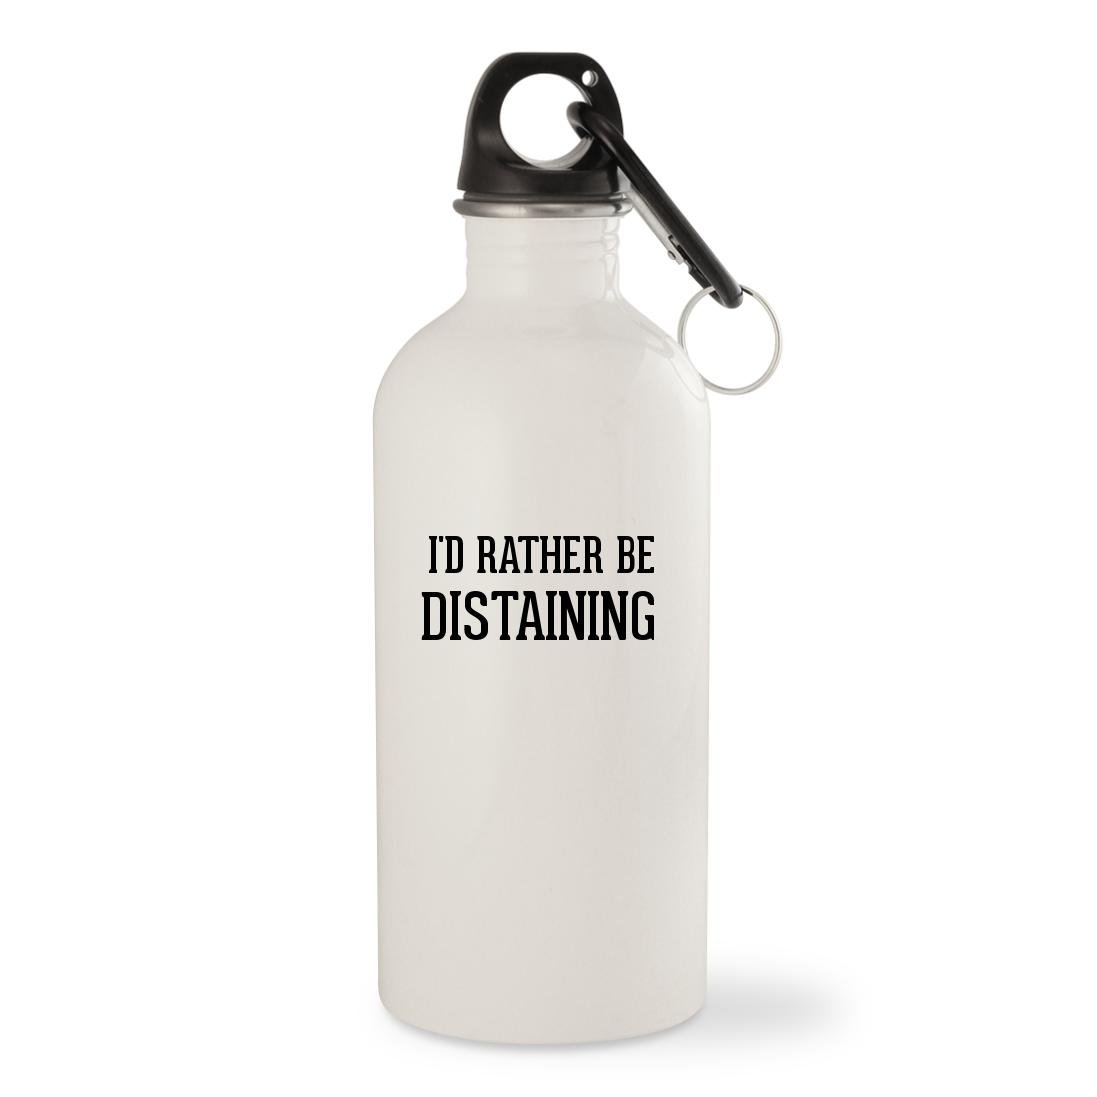 I'd Rather Be DISTAINING - White 20oz Stainless Steel Water Bottle with Carabiner